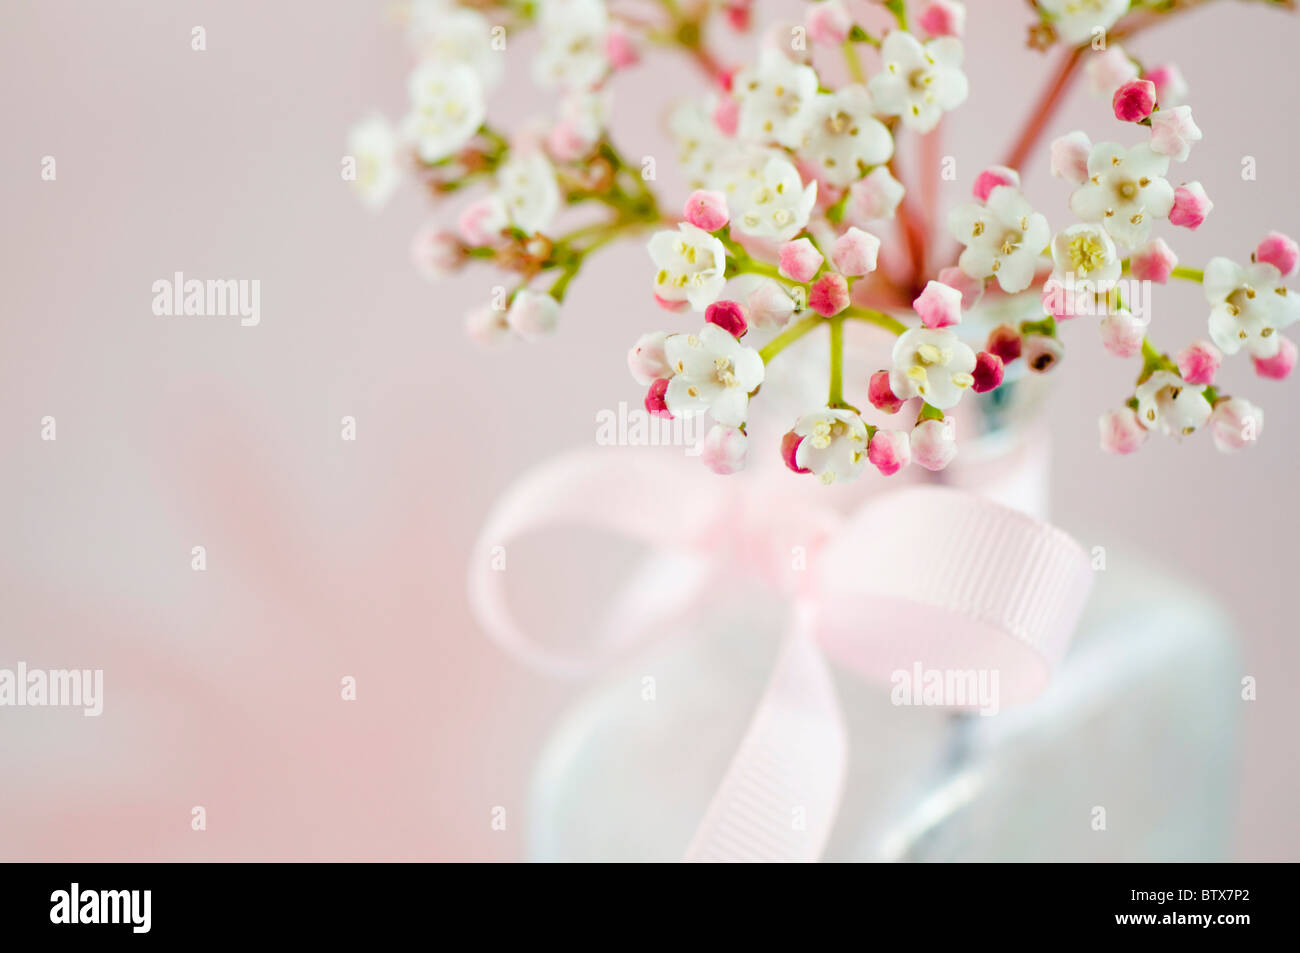 Viburnum flowers in vase with pink bow - Stock Image